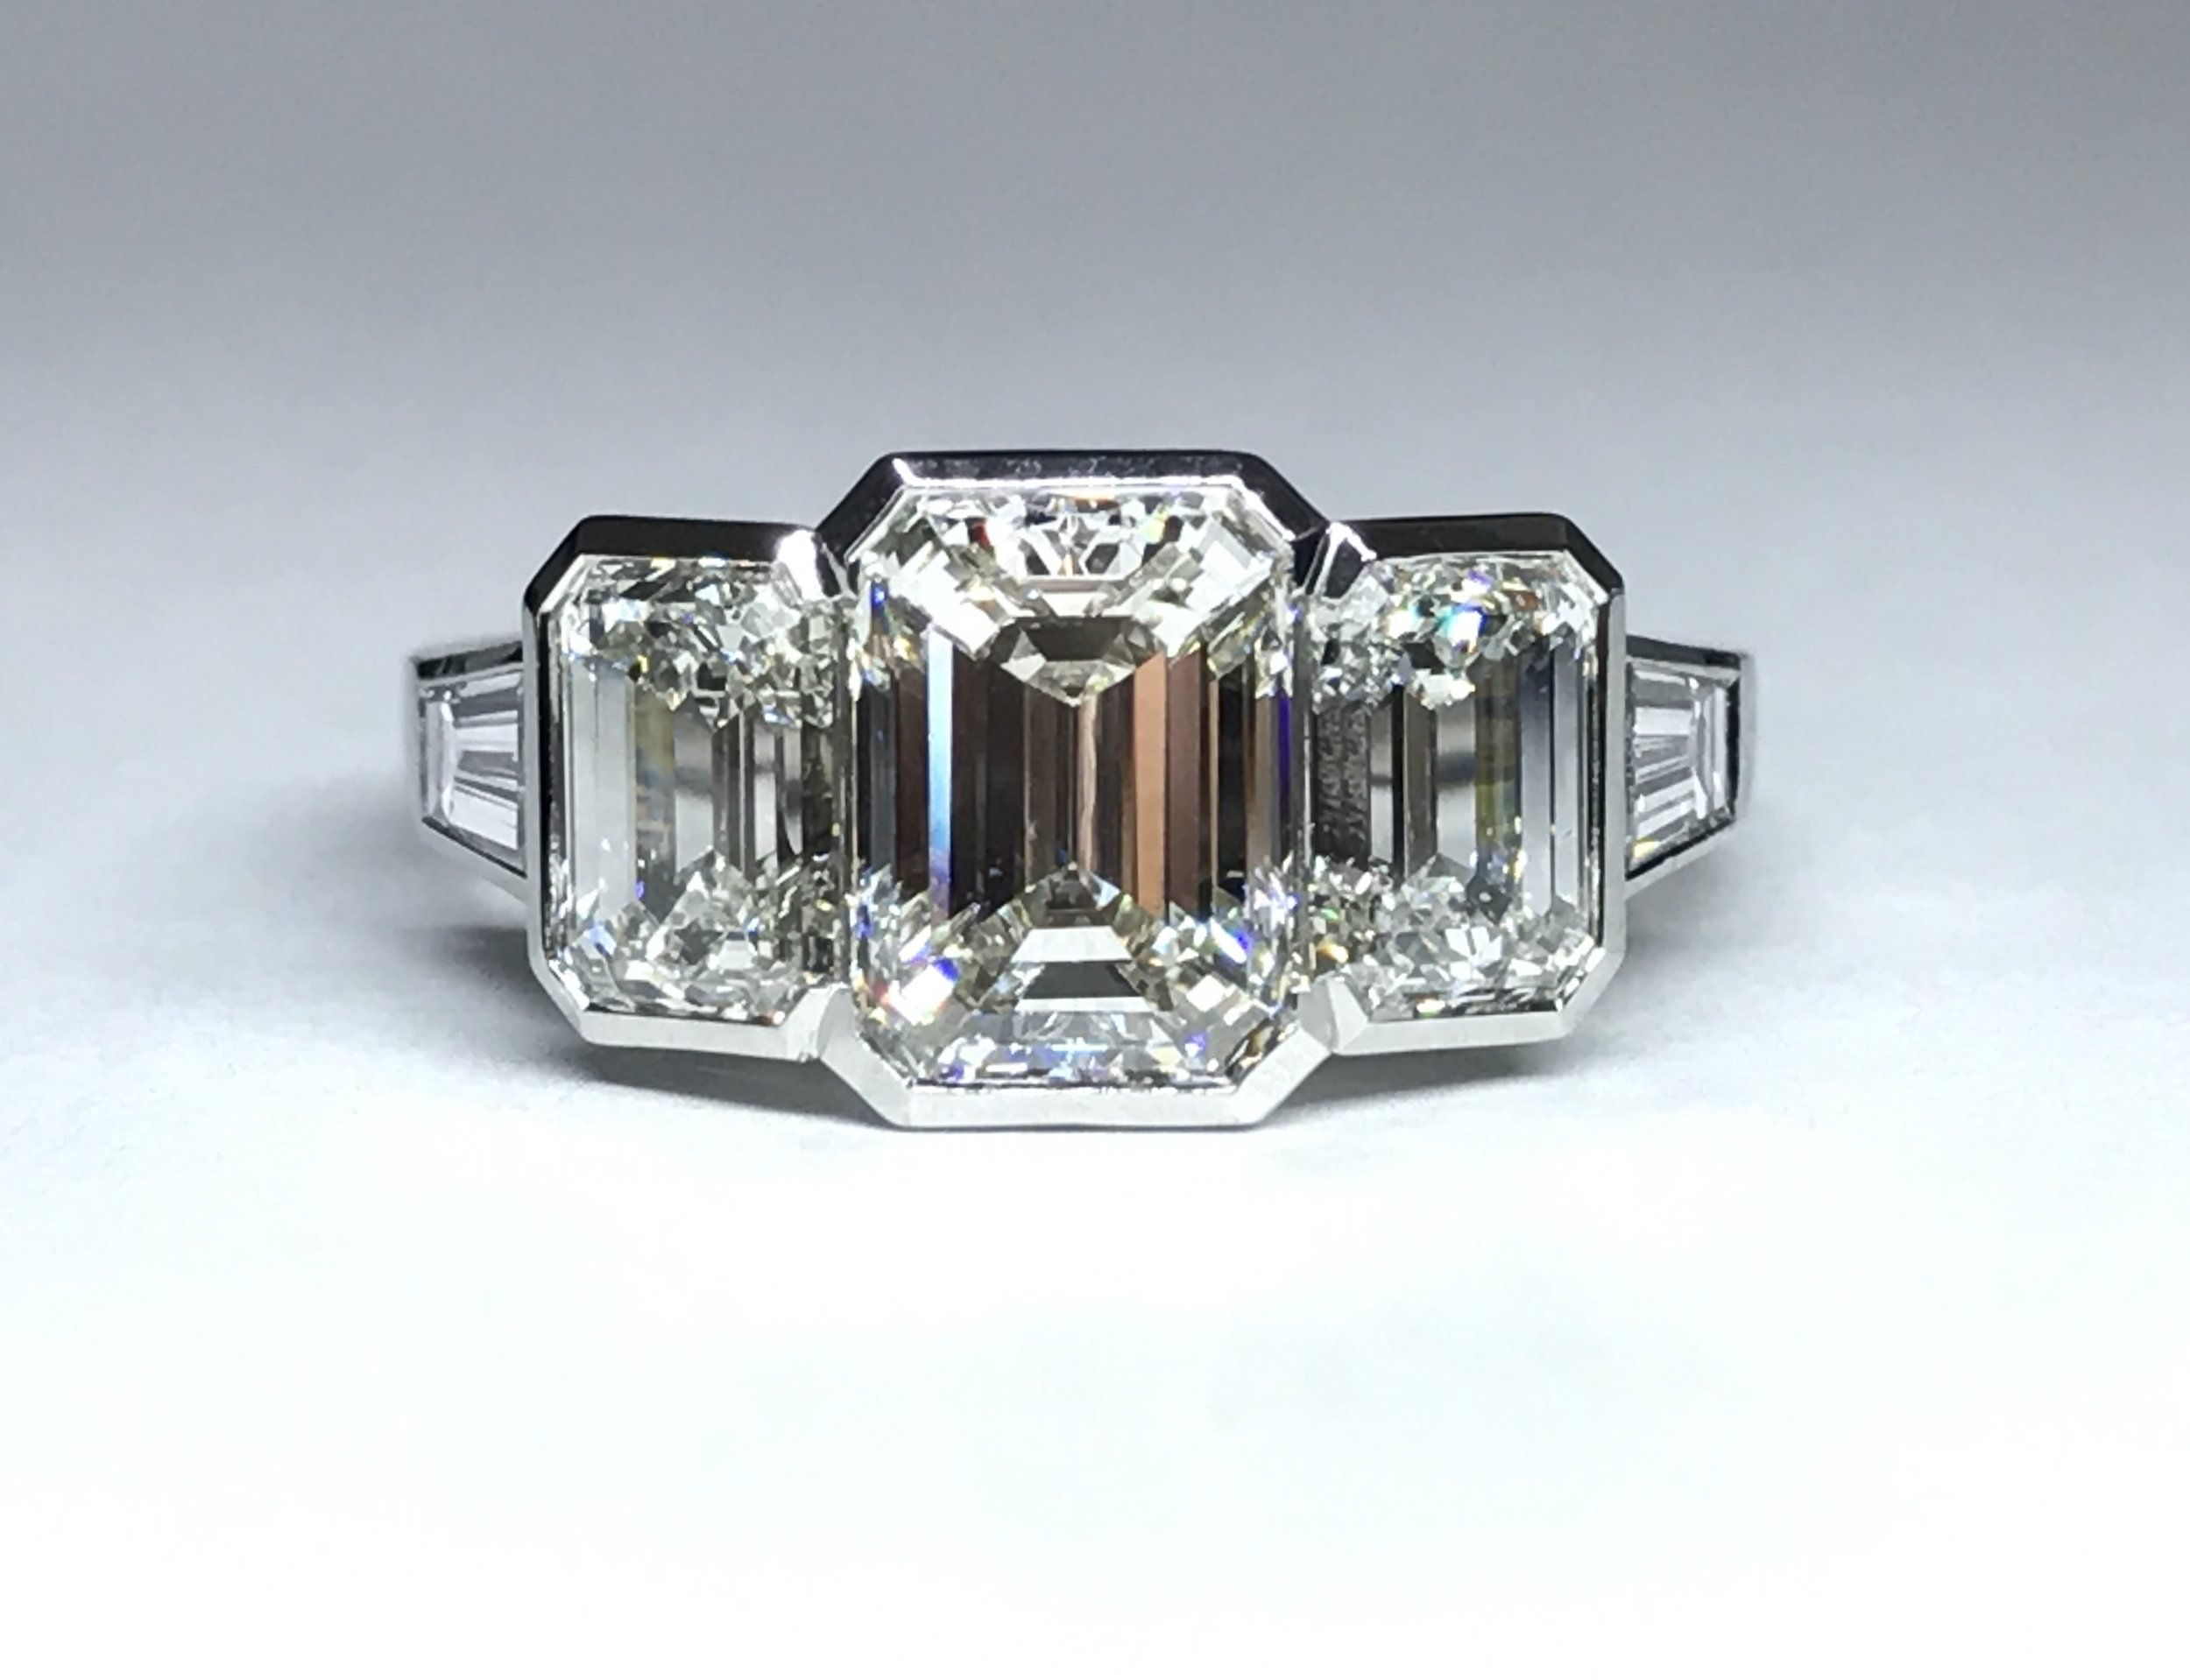 Platinum mounted emerald cut diamond, rub-over set 3 stone with tapered baguette diamond set shoulders. Made in Chichester, England..